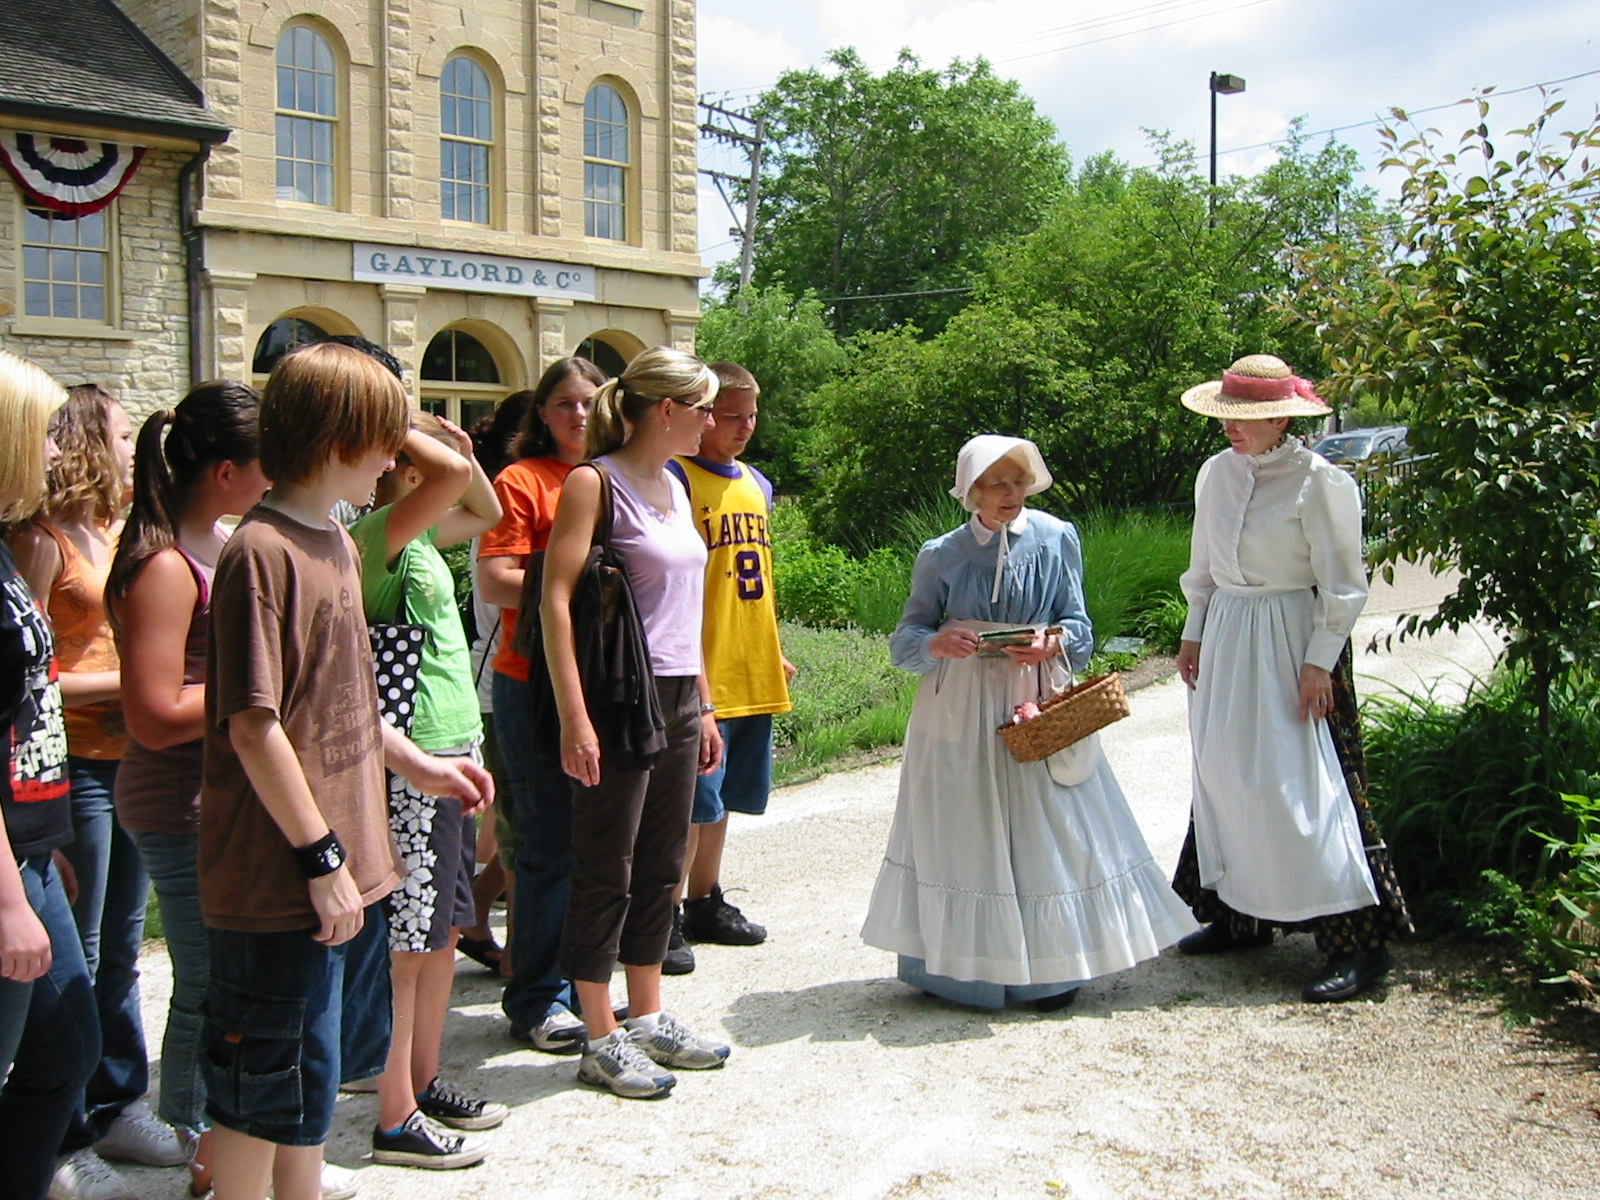 Costumed interpreters lead a school tour at the Gaylord Building in Lockport, Illinois. This 1838 canal warehouse is one of the oldest buildings in northeastern Illinois.